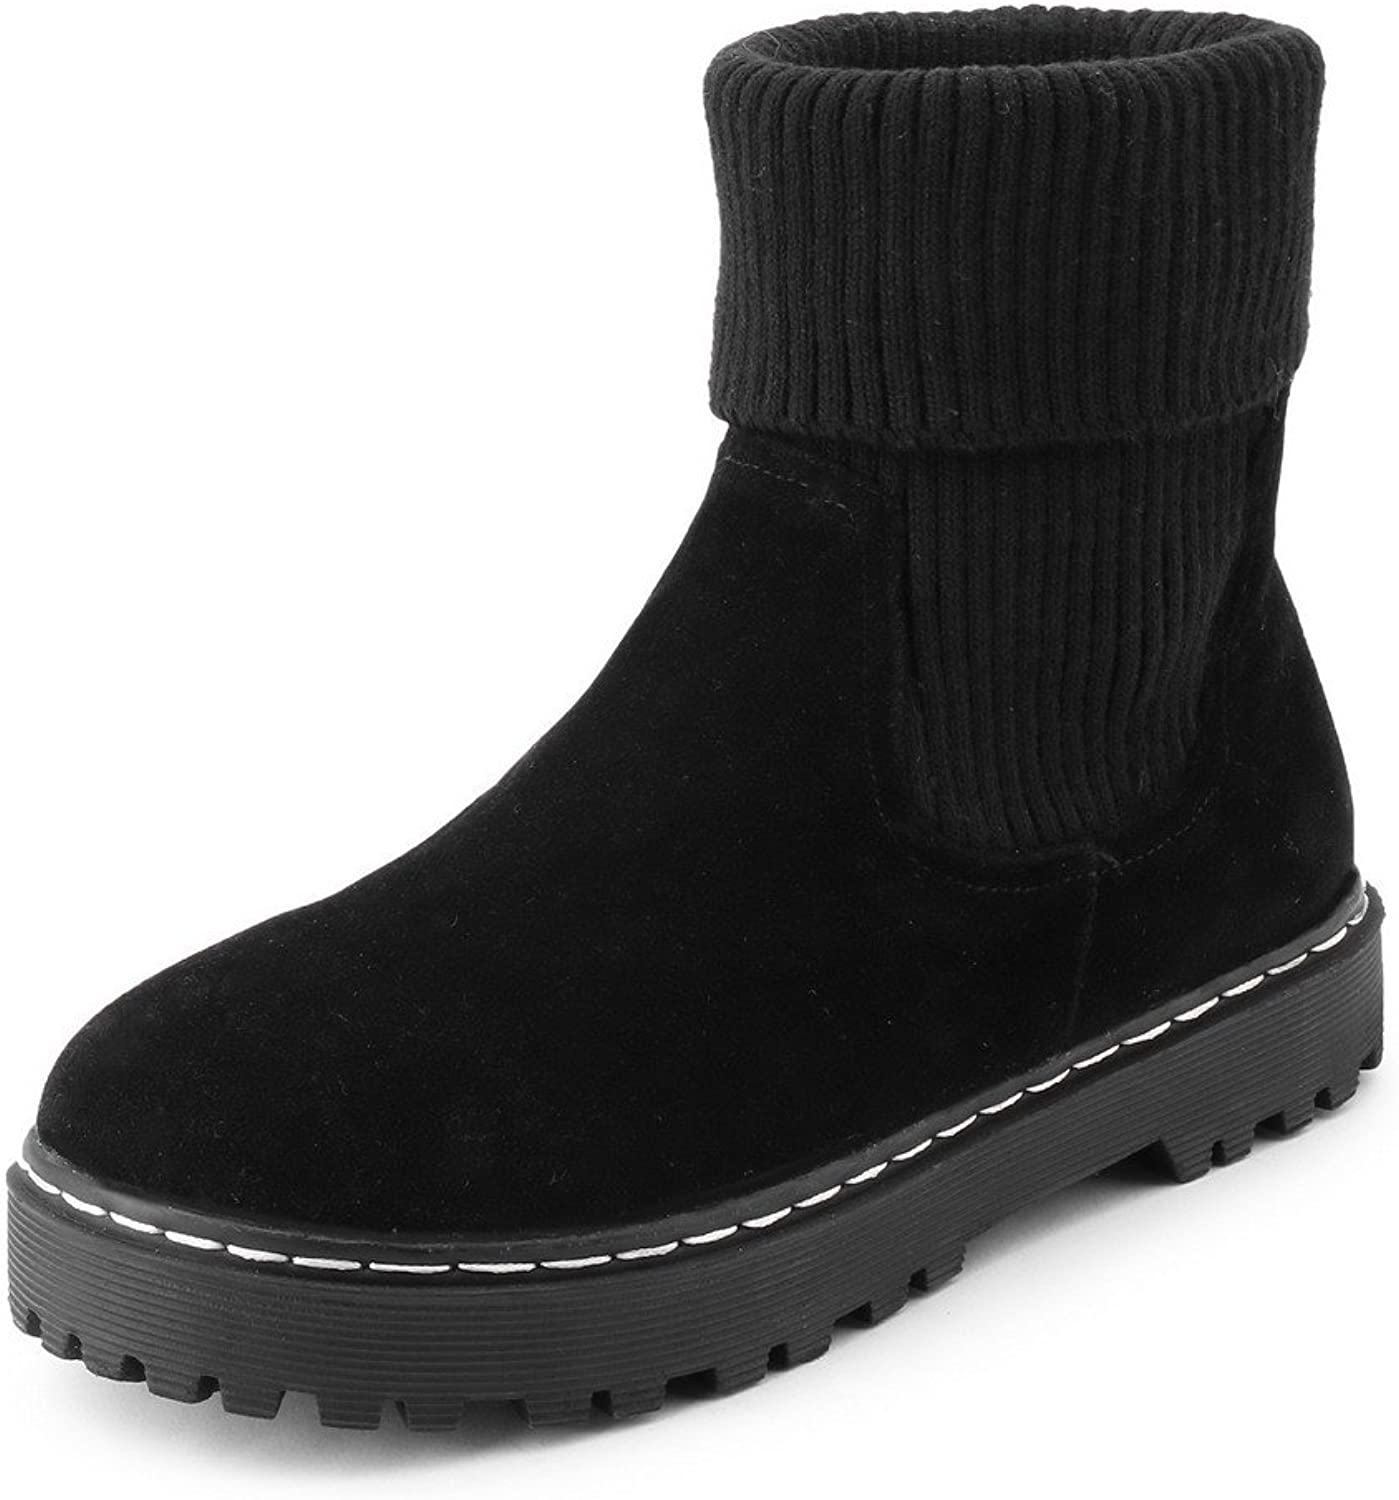 WeenFashion Women's Frosted Closed Round Toe Solid Low-Top Low-Heels Boots